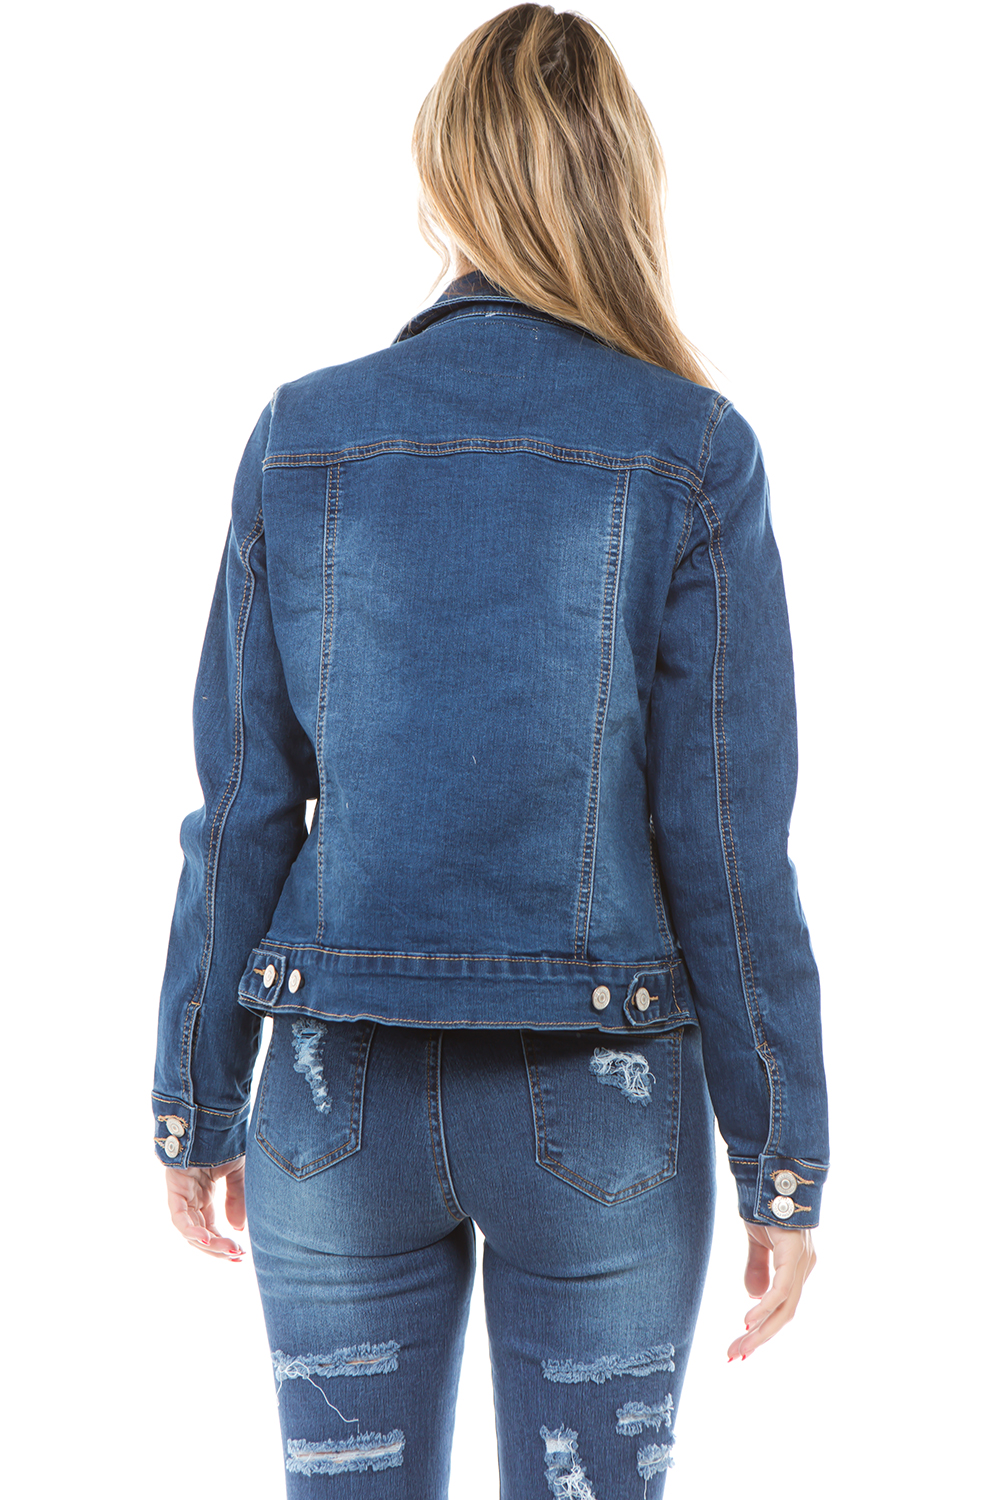 Women-039-s-Juniors-Boyfriend-Premium-Denim-Jackets-Long-Sleeve-Jean-Coats thumbnail 11